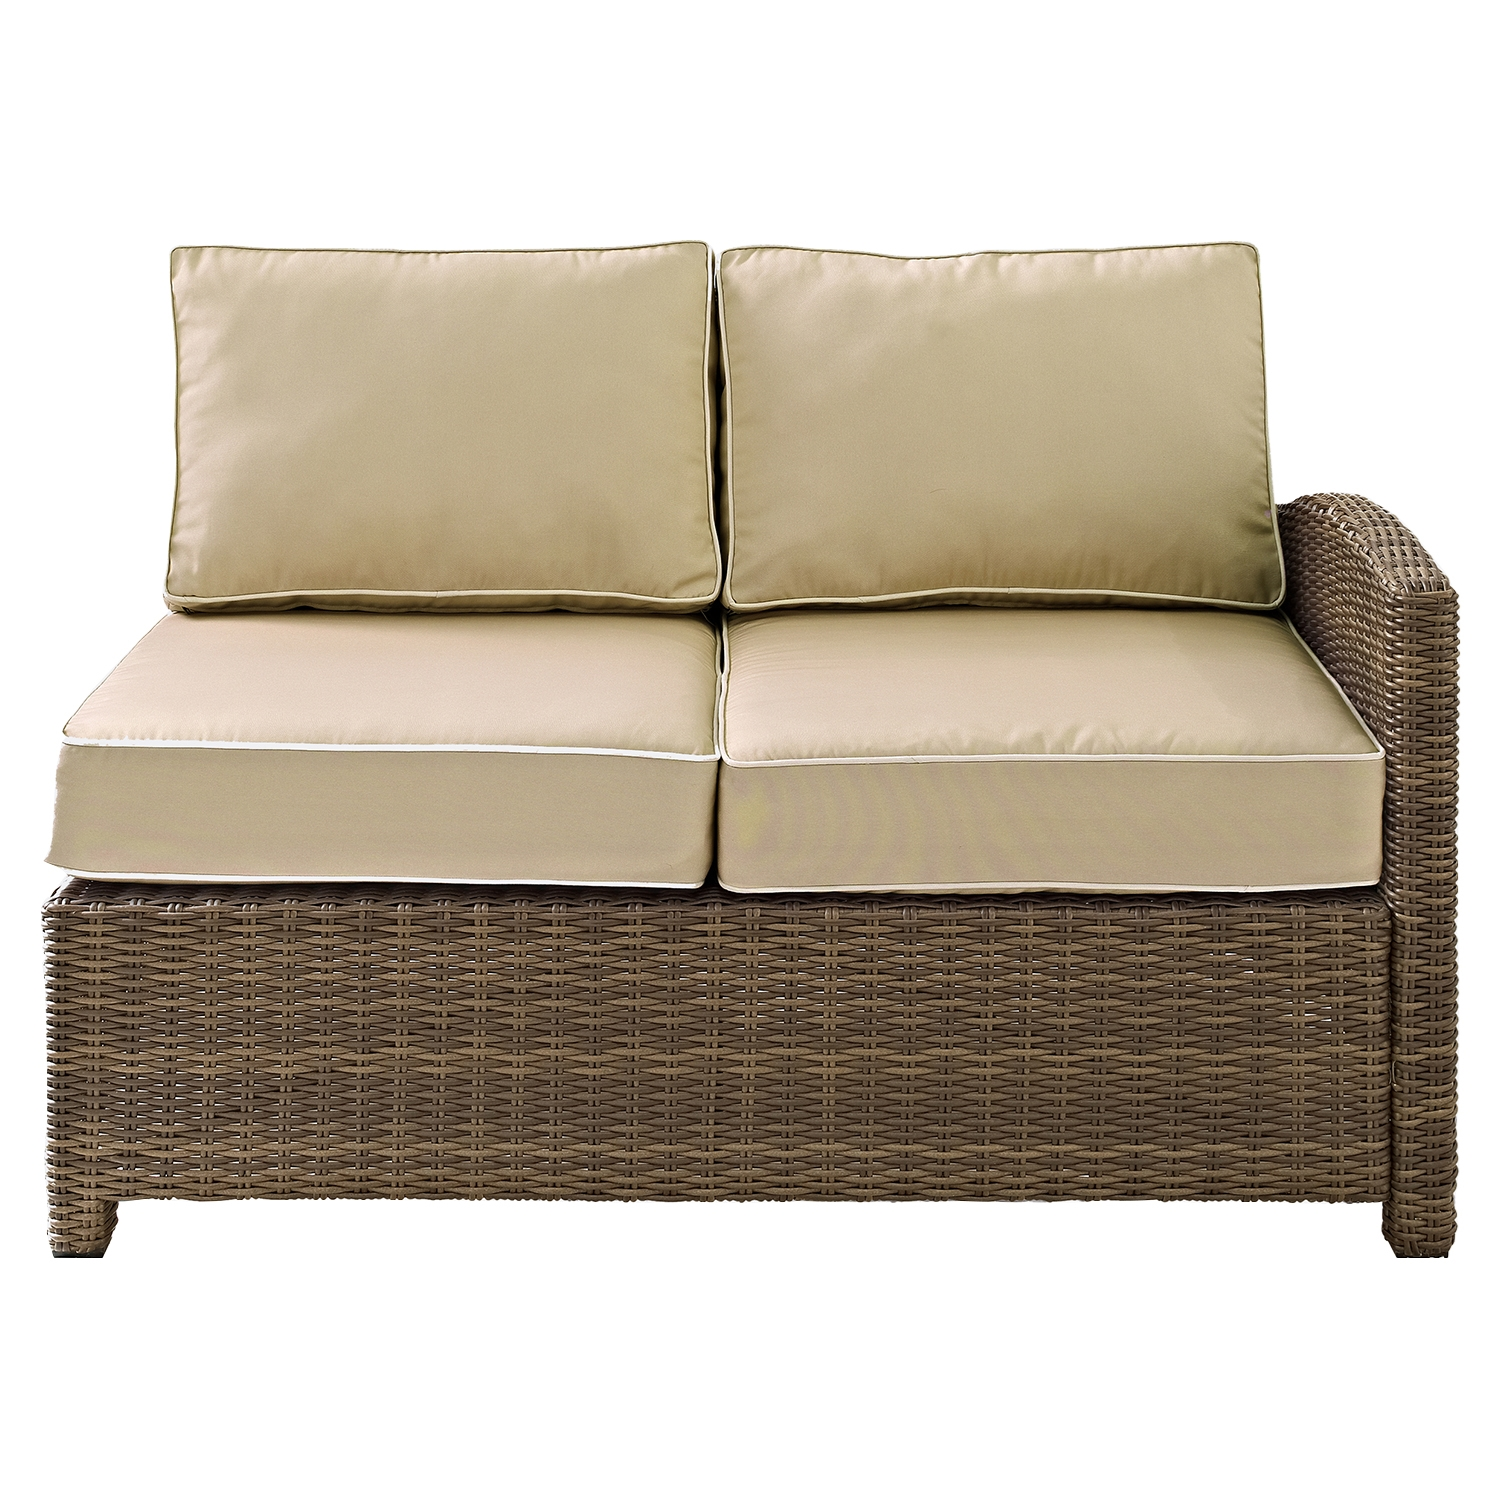 Bradenton Outdoor Wicker Sectional Right Corner Loveseat - Sand Cushions - CROS-KO70015WB-SA